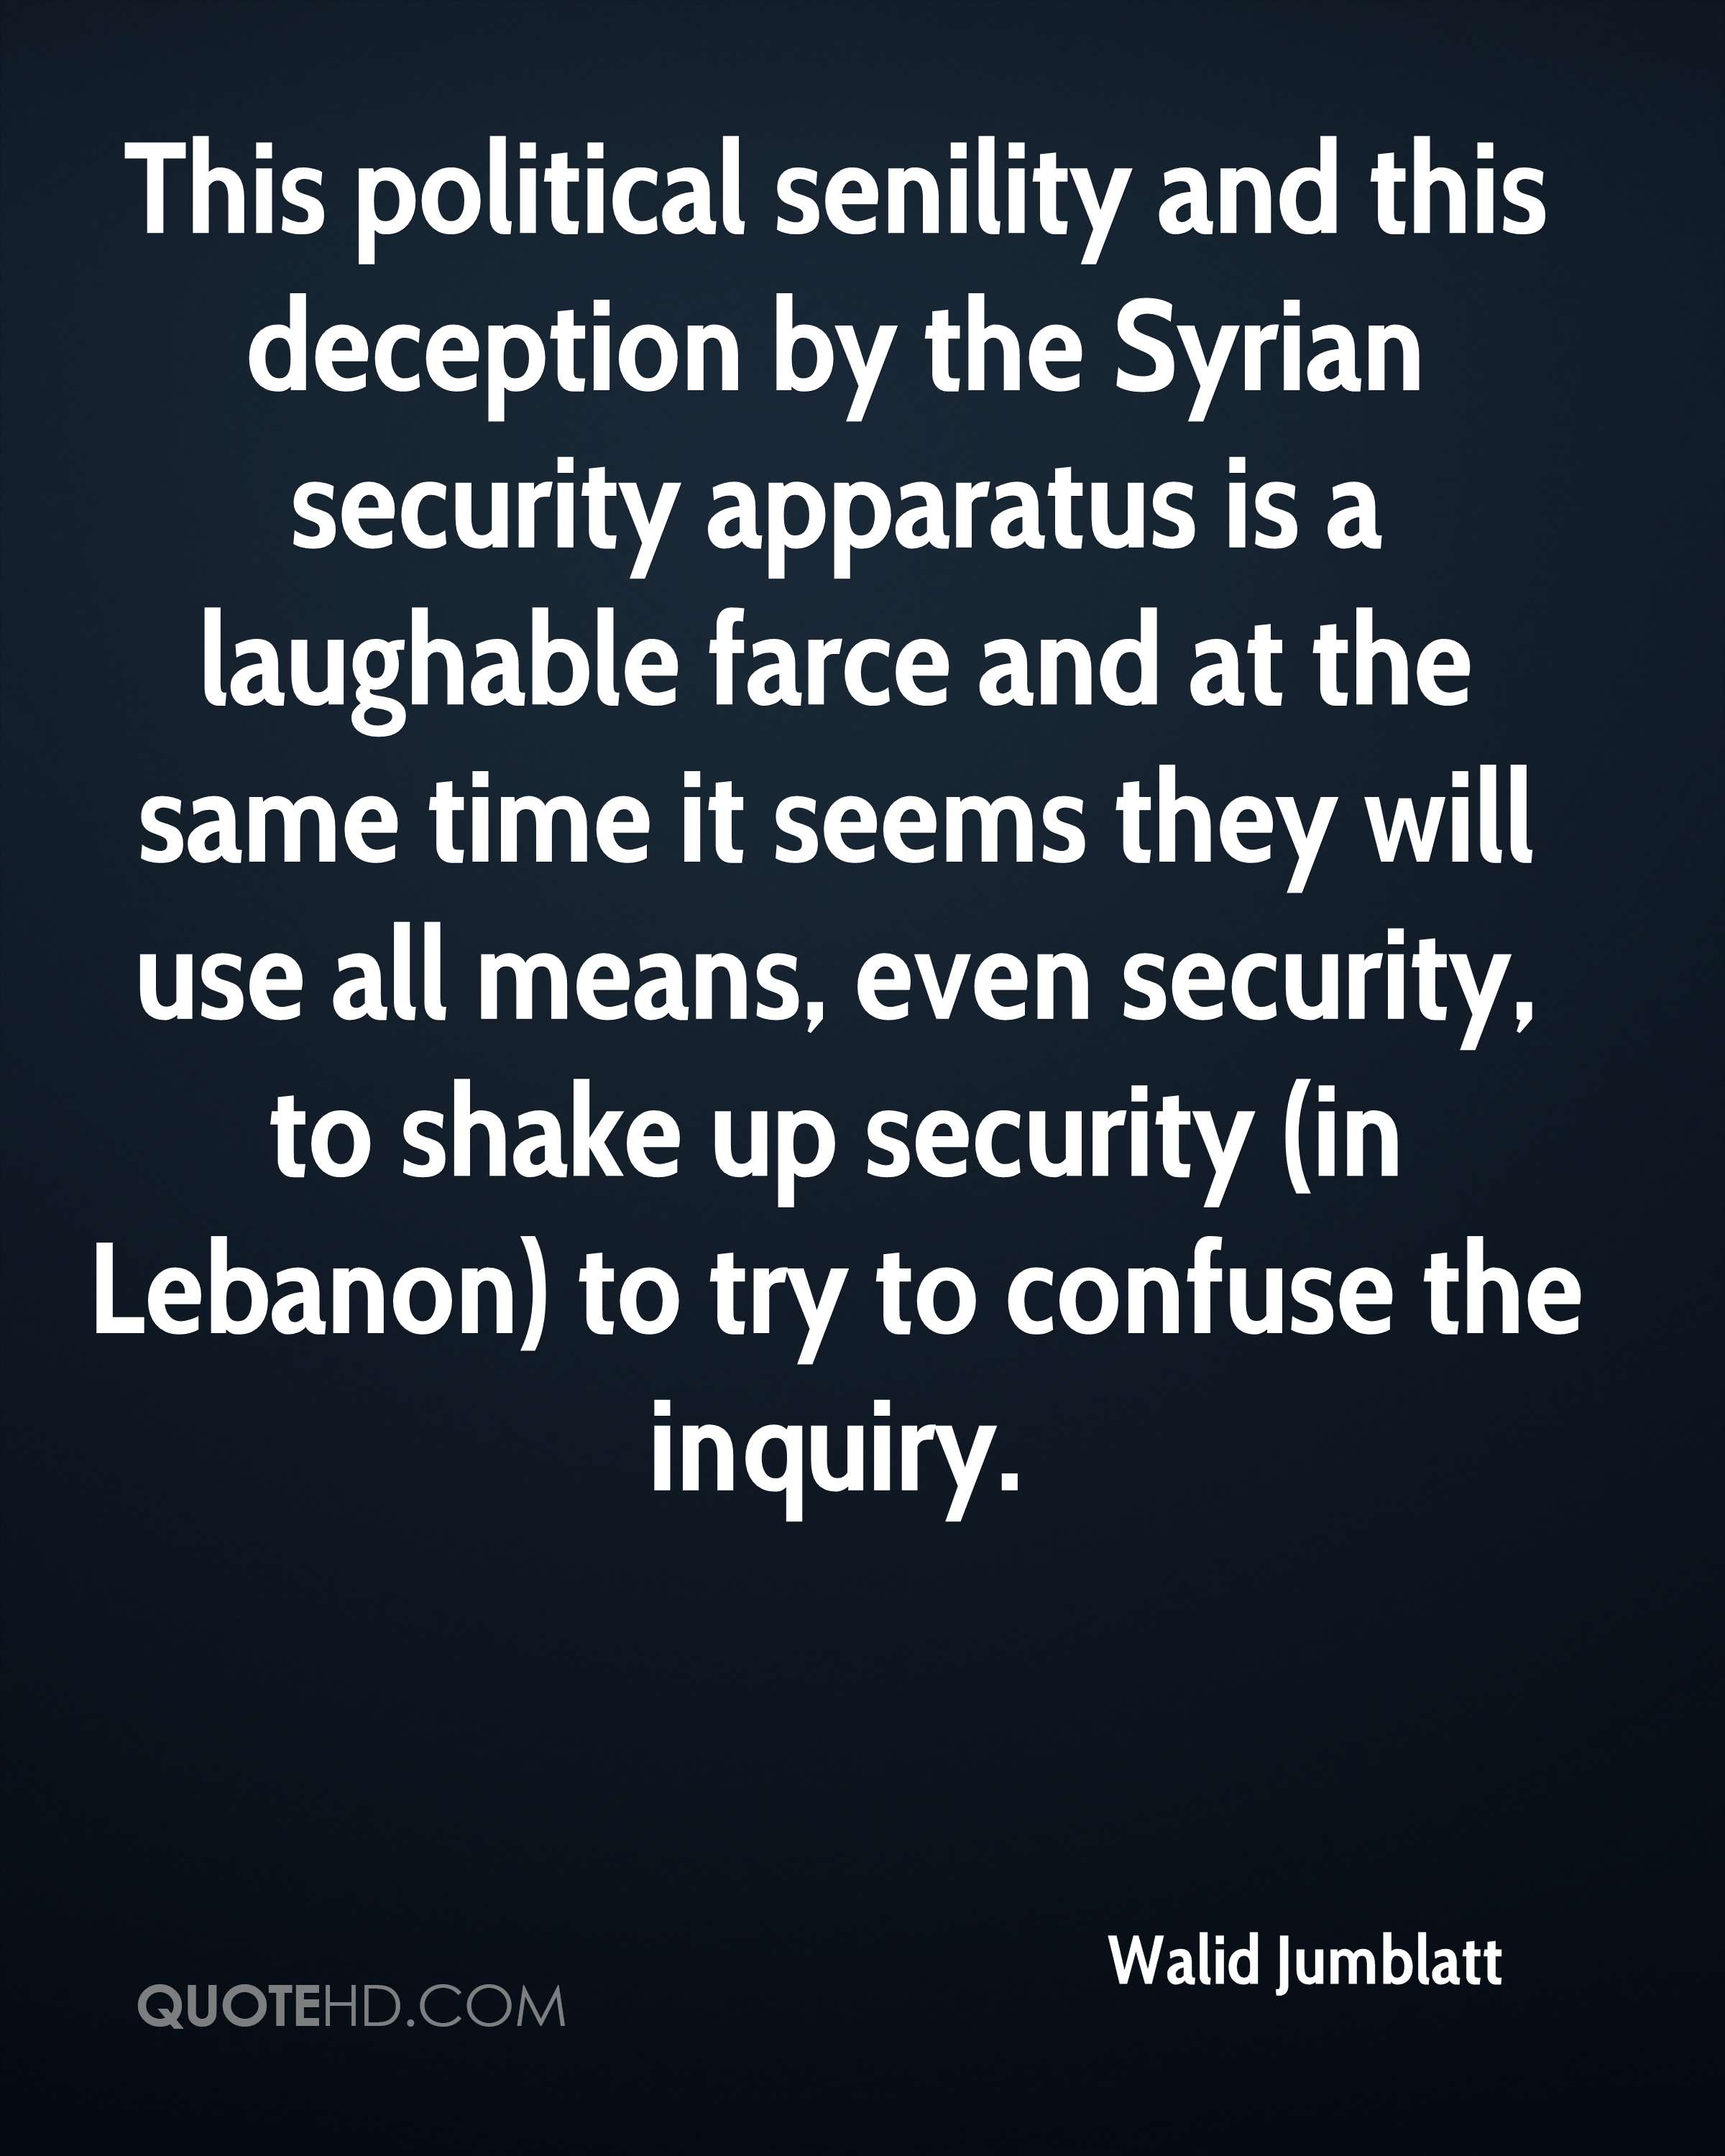 This political senility and this deception by the Syrian security apparatus is a laughable farce and at the same time it seems they will use all means, even security, to shake up security (in Lebanon) to try to confuse the inquiry.